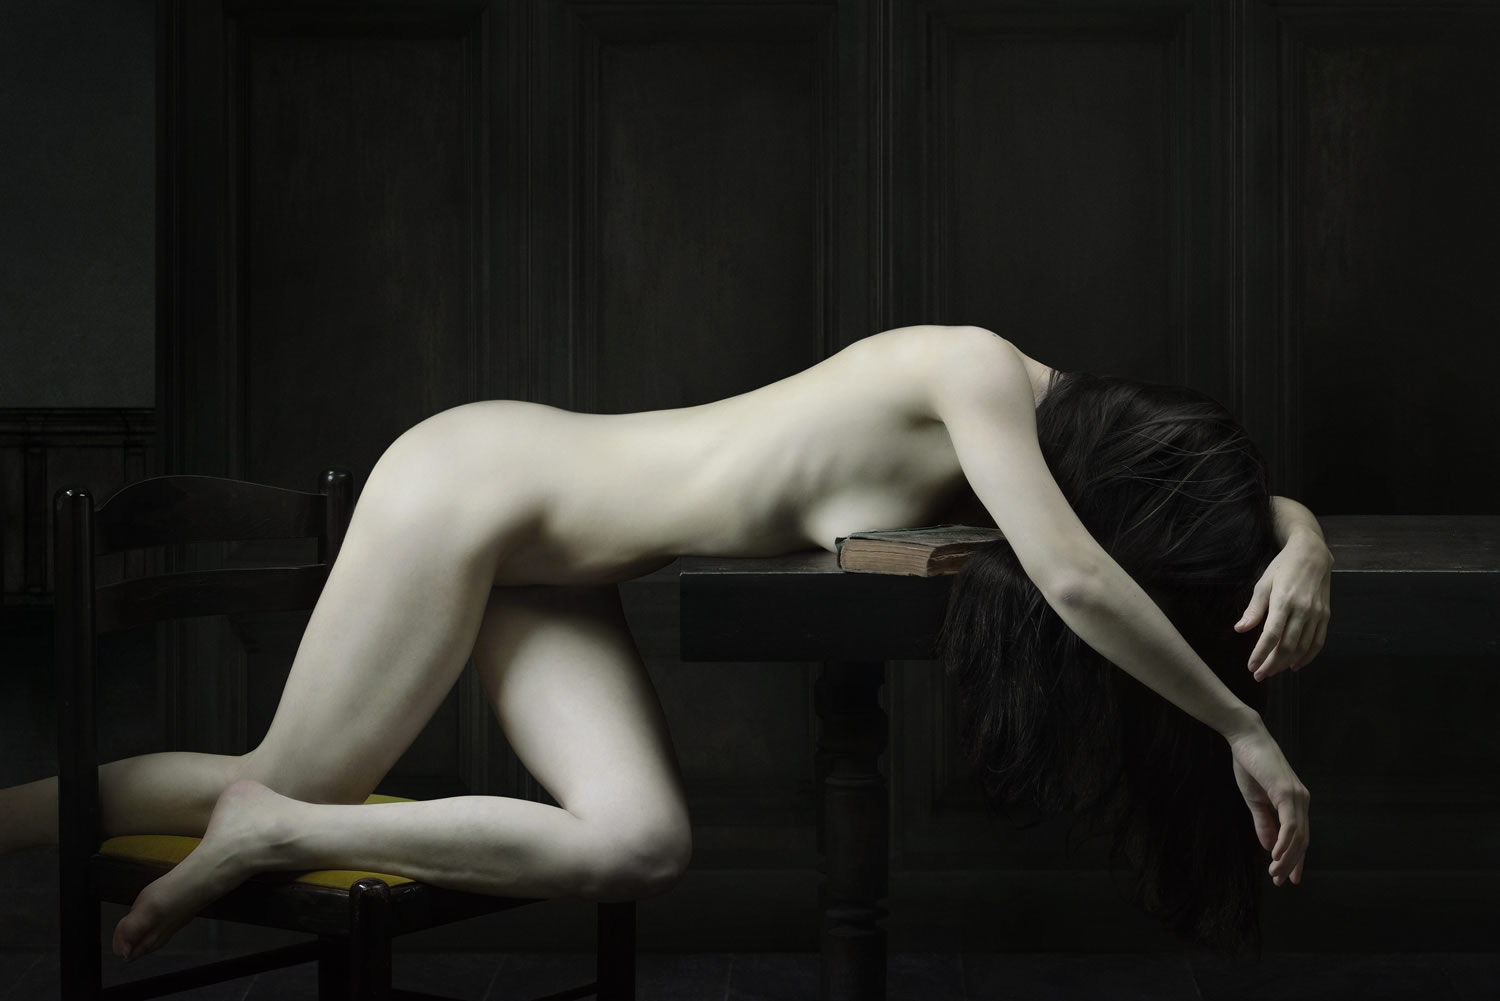 woman, drifting series, photography by Olivier Valsecchi